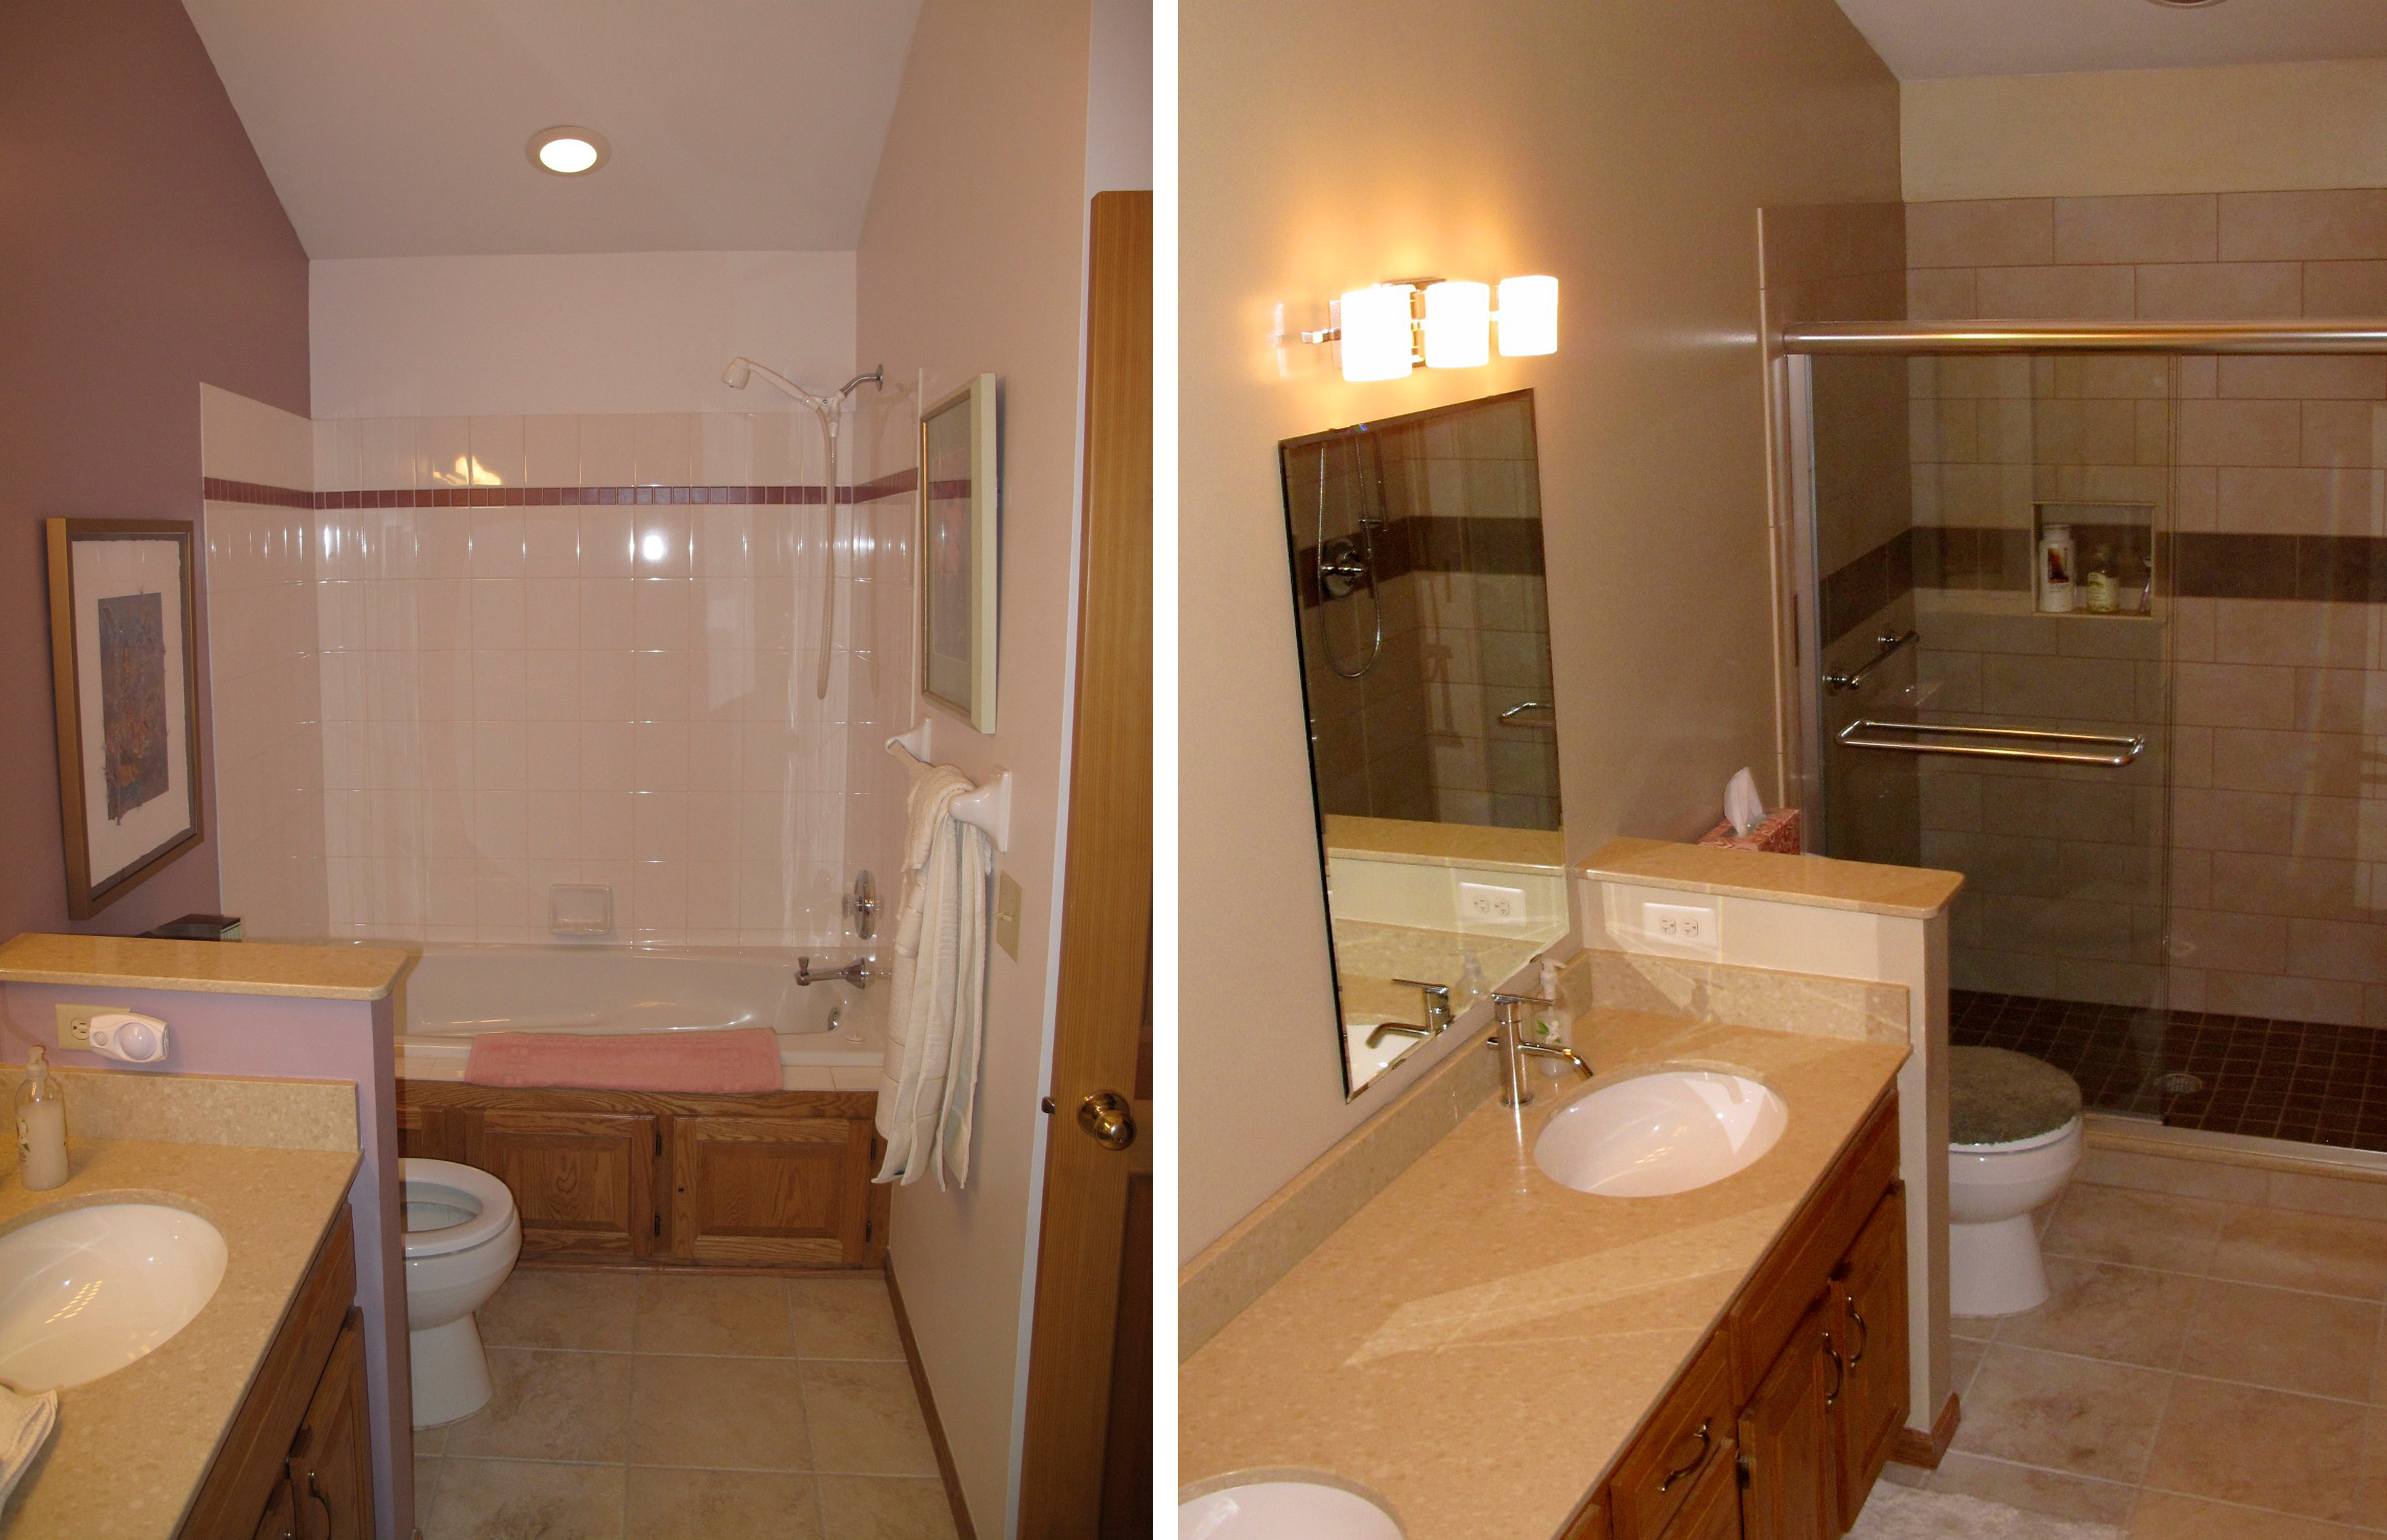 Dbc extreme makeover making your house feel like home for Bathroom remodel pics